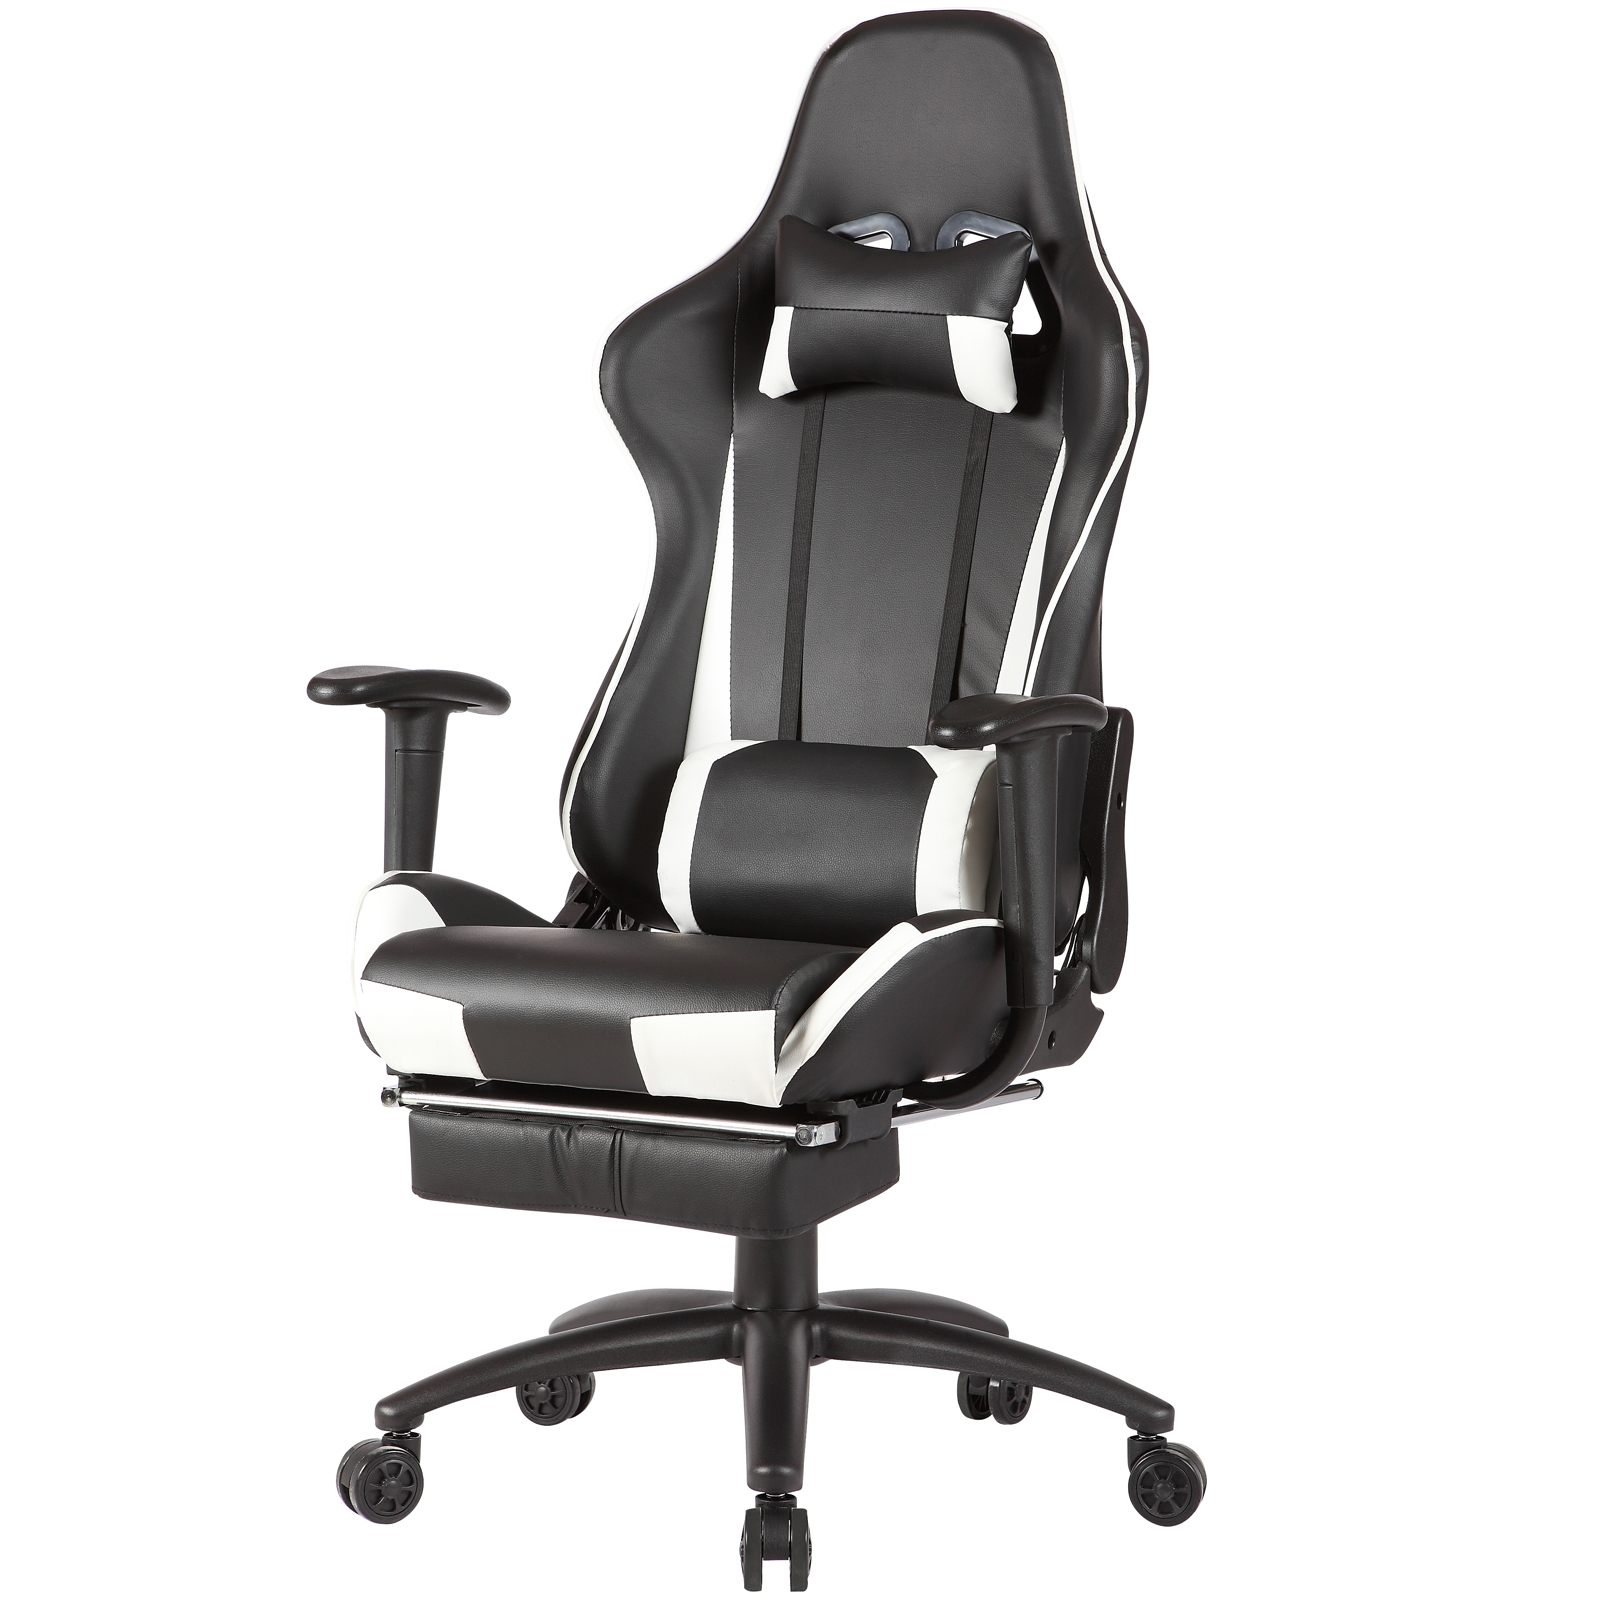 White Gaming Chair Office Gaming Chair Racing Seats Computer Chair Executive